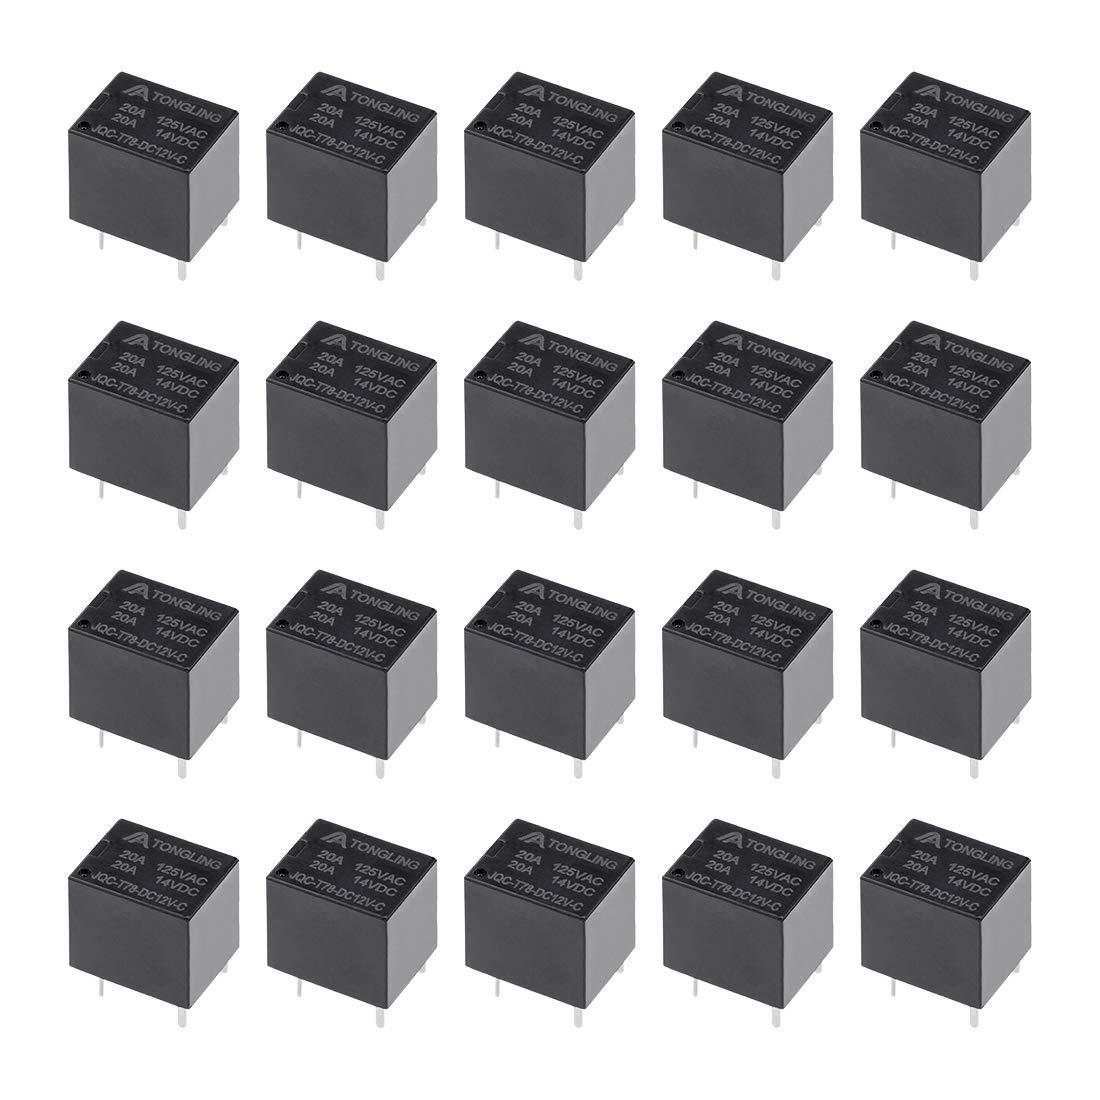 sourcingmap 20 Pcs JQC-T78-DC12V-C DC 12V Coil SPDT 5P PCB Electromagnetic Power Relay Black Color